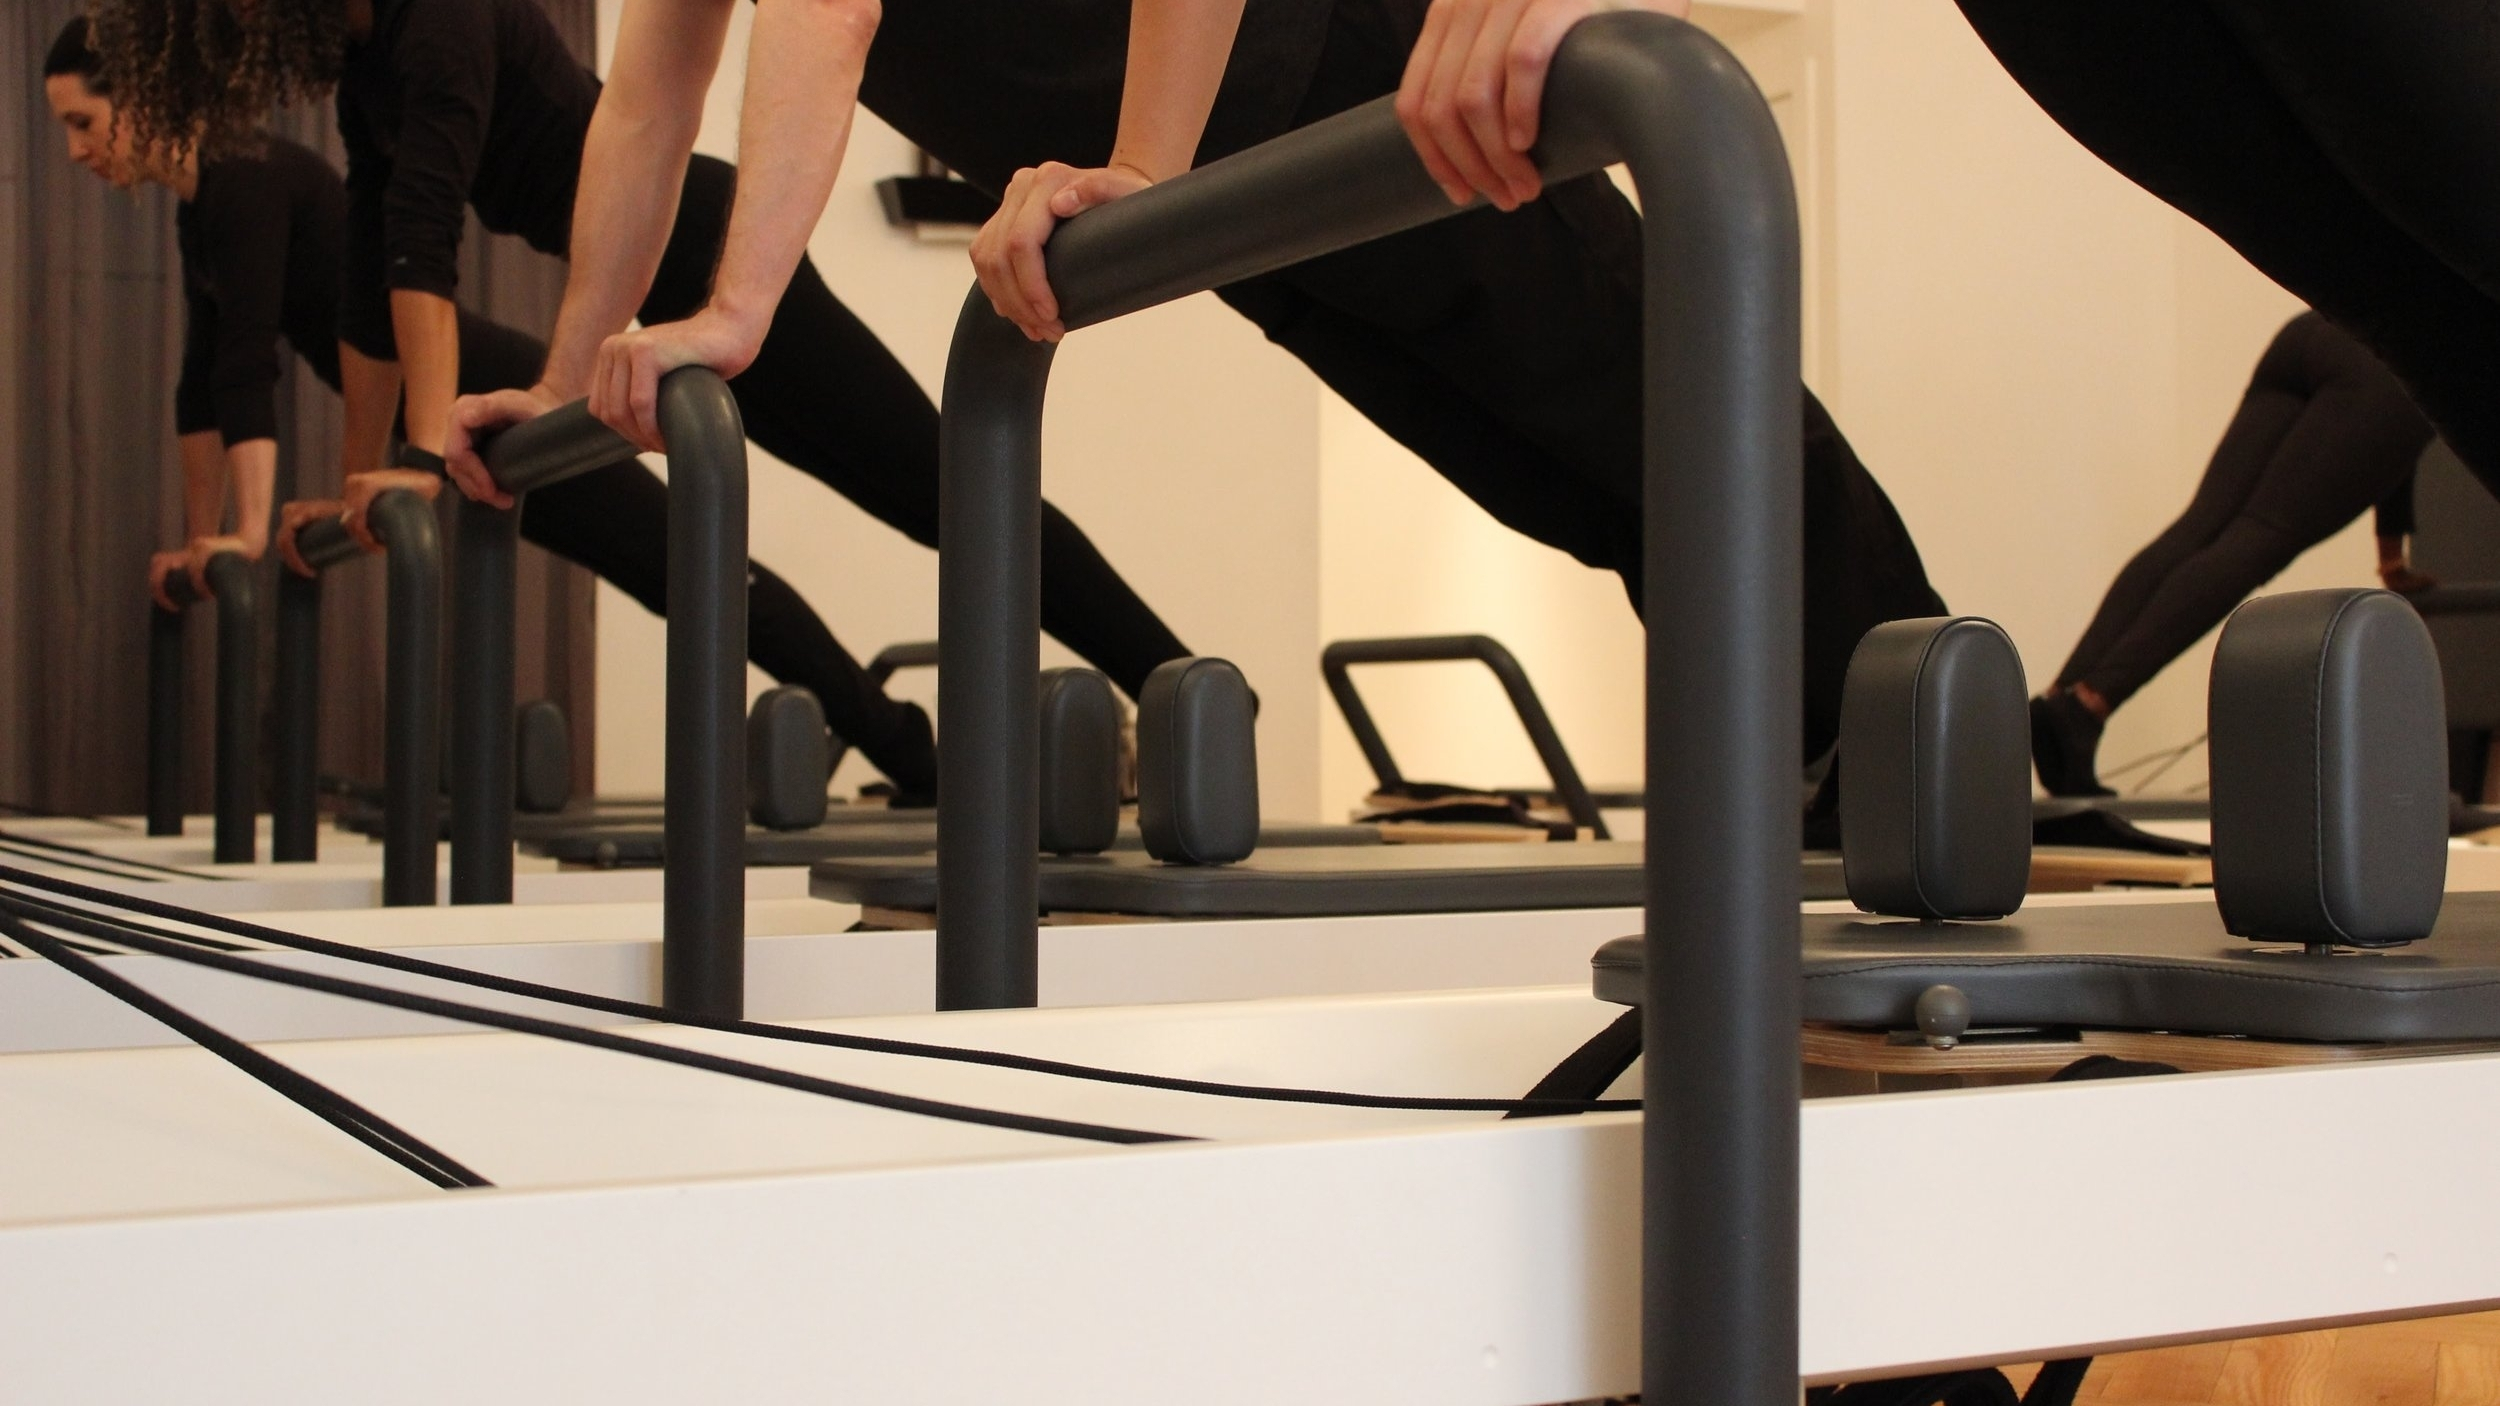 Pilates Reformer Benefits - INCREASE CORE STRENGTHIMPROVE POSTURE & FLEXIBILITYREDUCE MUSCLE & BACK PAIN